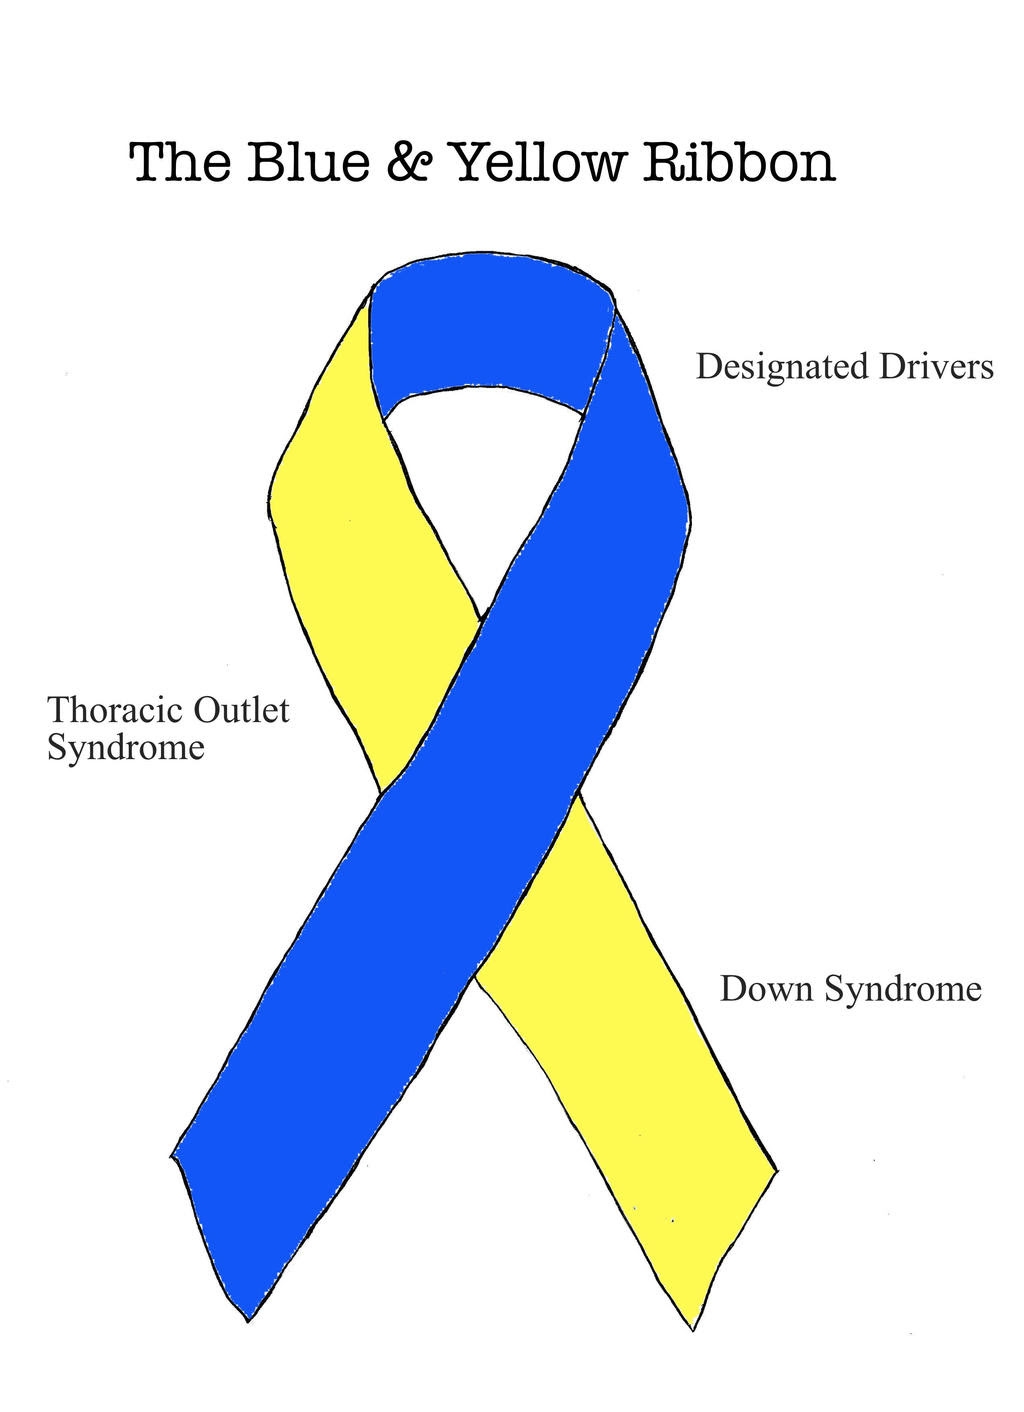 98 MEANING YELLOW RIBBON PHILIPPINES, MEANING RIBBON YELLOW